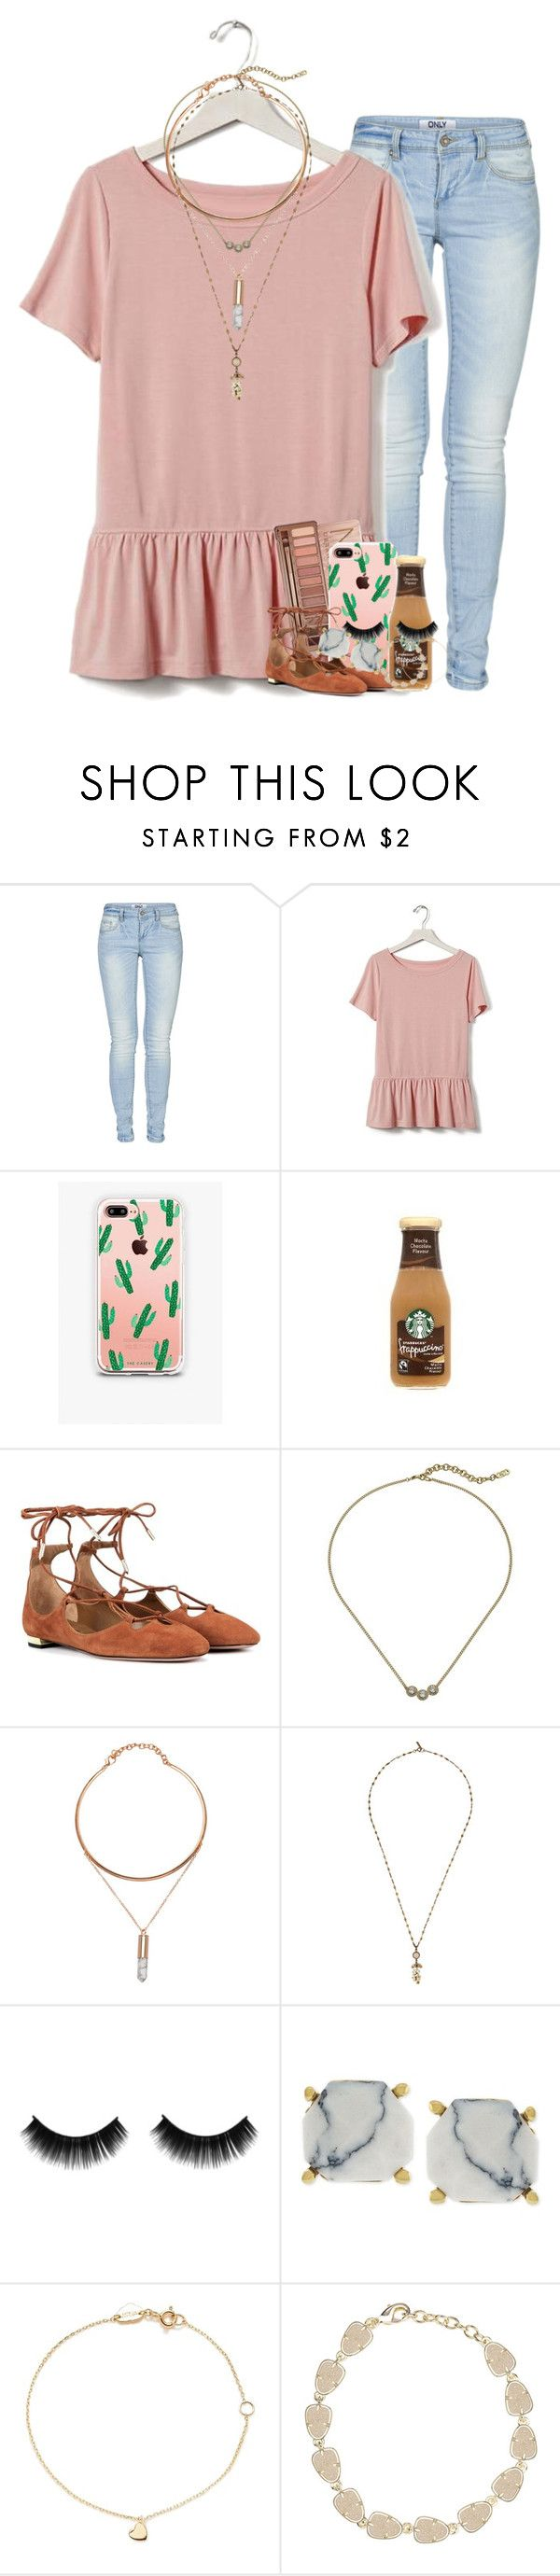 """baby we were born with fire & gold in our eyes."" by ellaswiftie13 ❤ liked on Polyvore featuring ONLY, Banana Republic, Urban Decay, The Casery, Aquazzura, Cole Haan, Isabel Marant, Vince Camuto, Estella Bartlett and Kendra Scott"